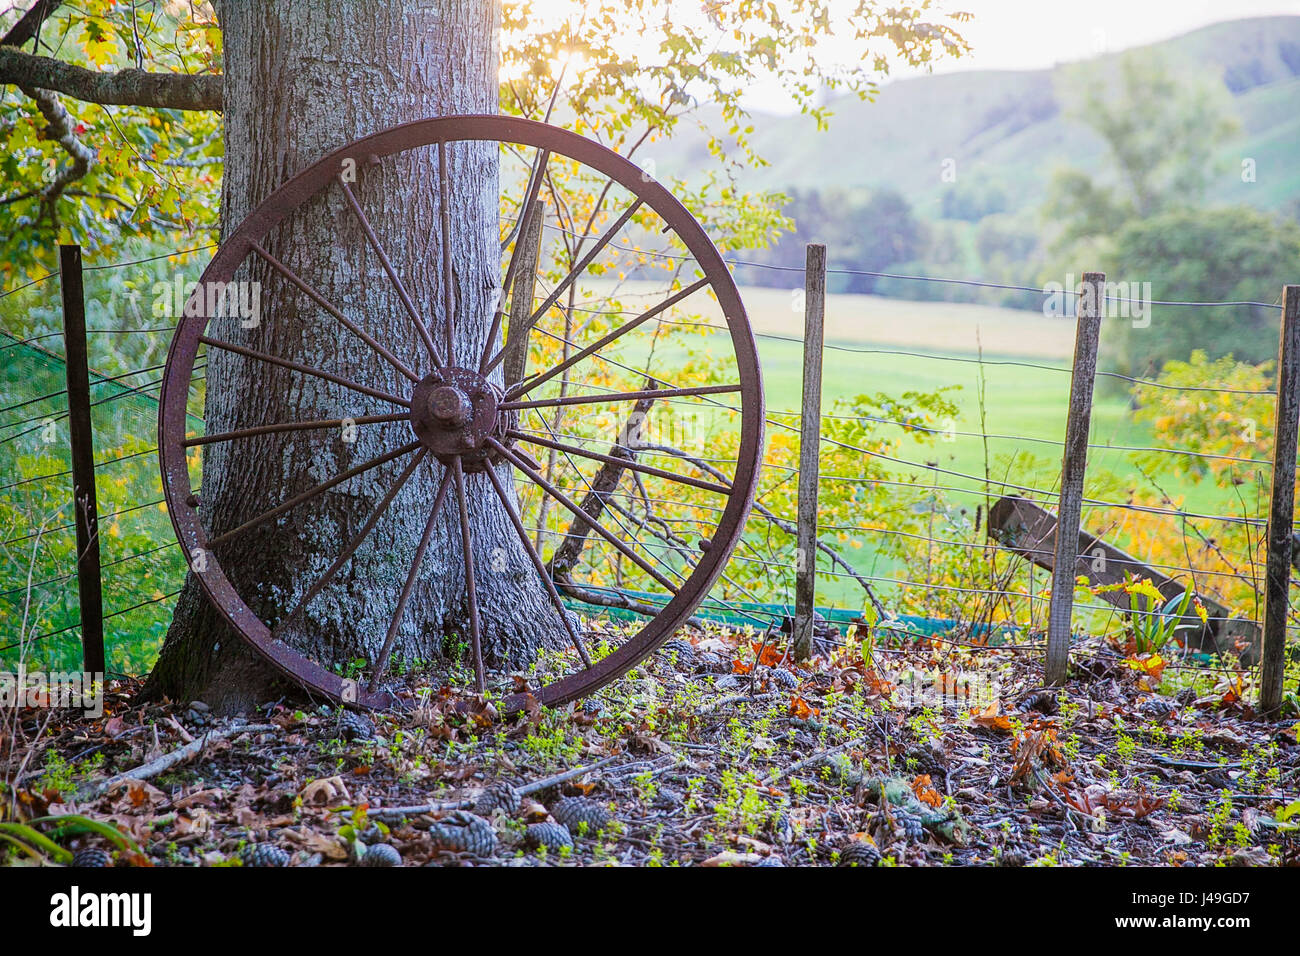 Old metal cartwheel - Stock Image